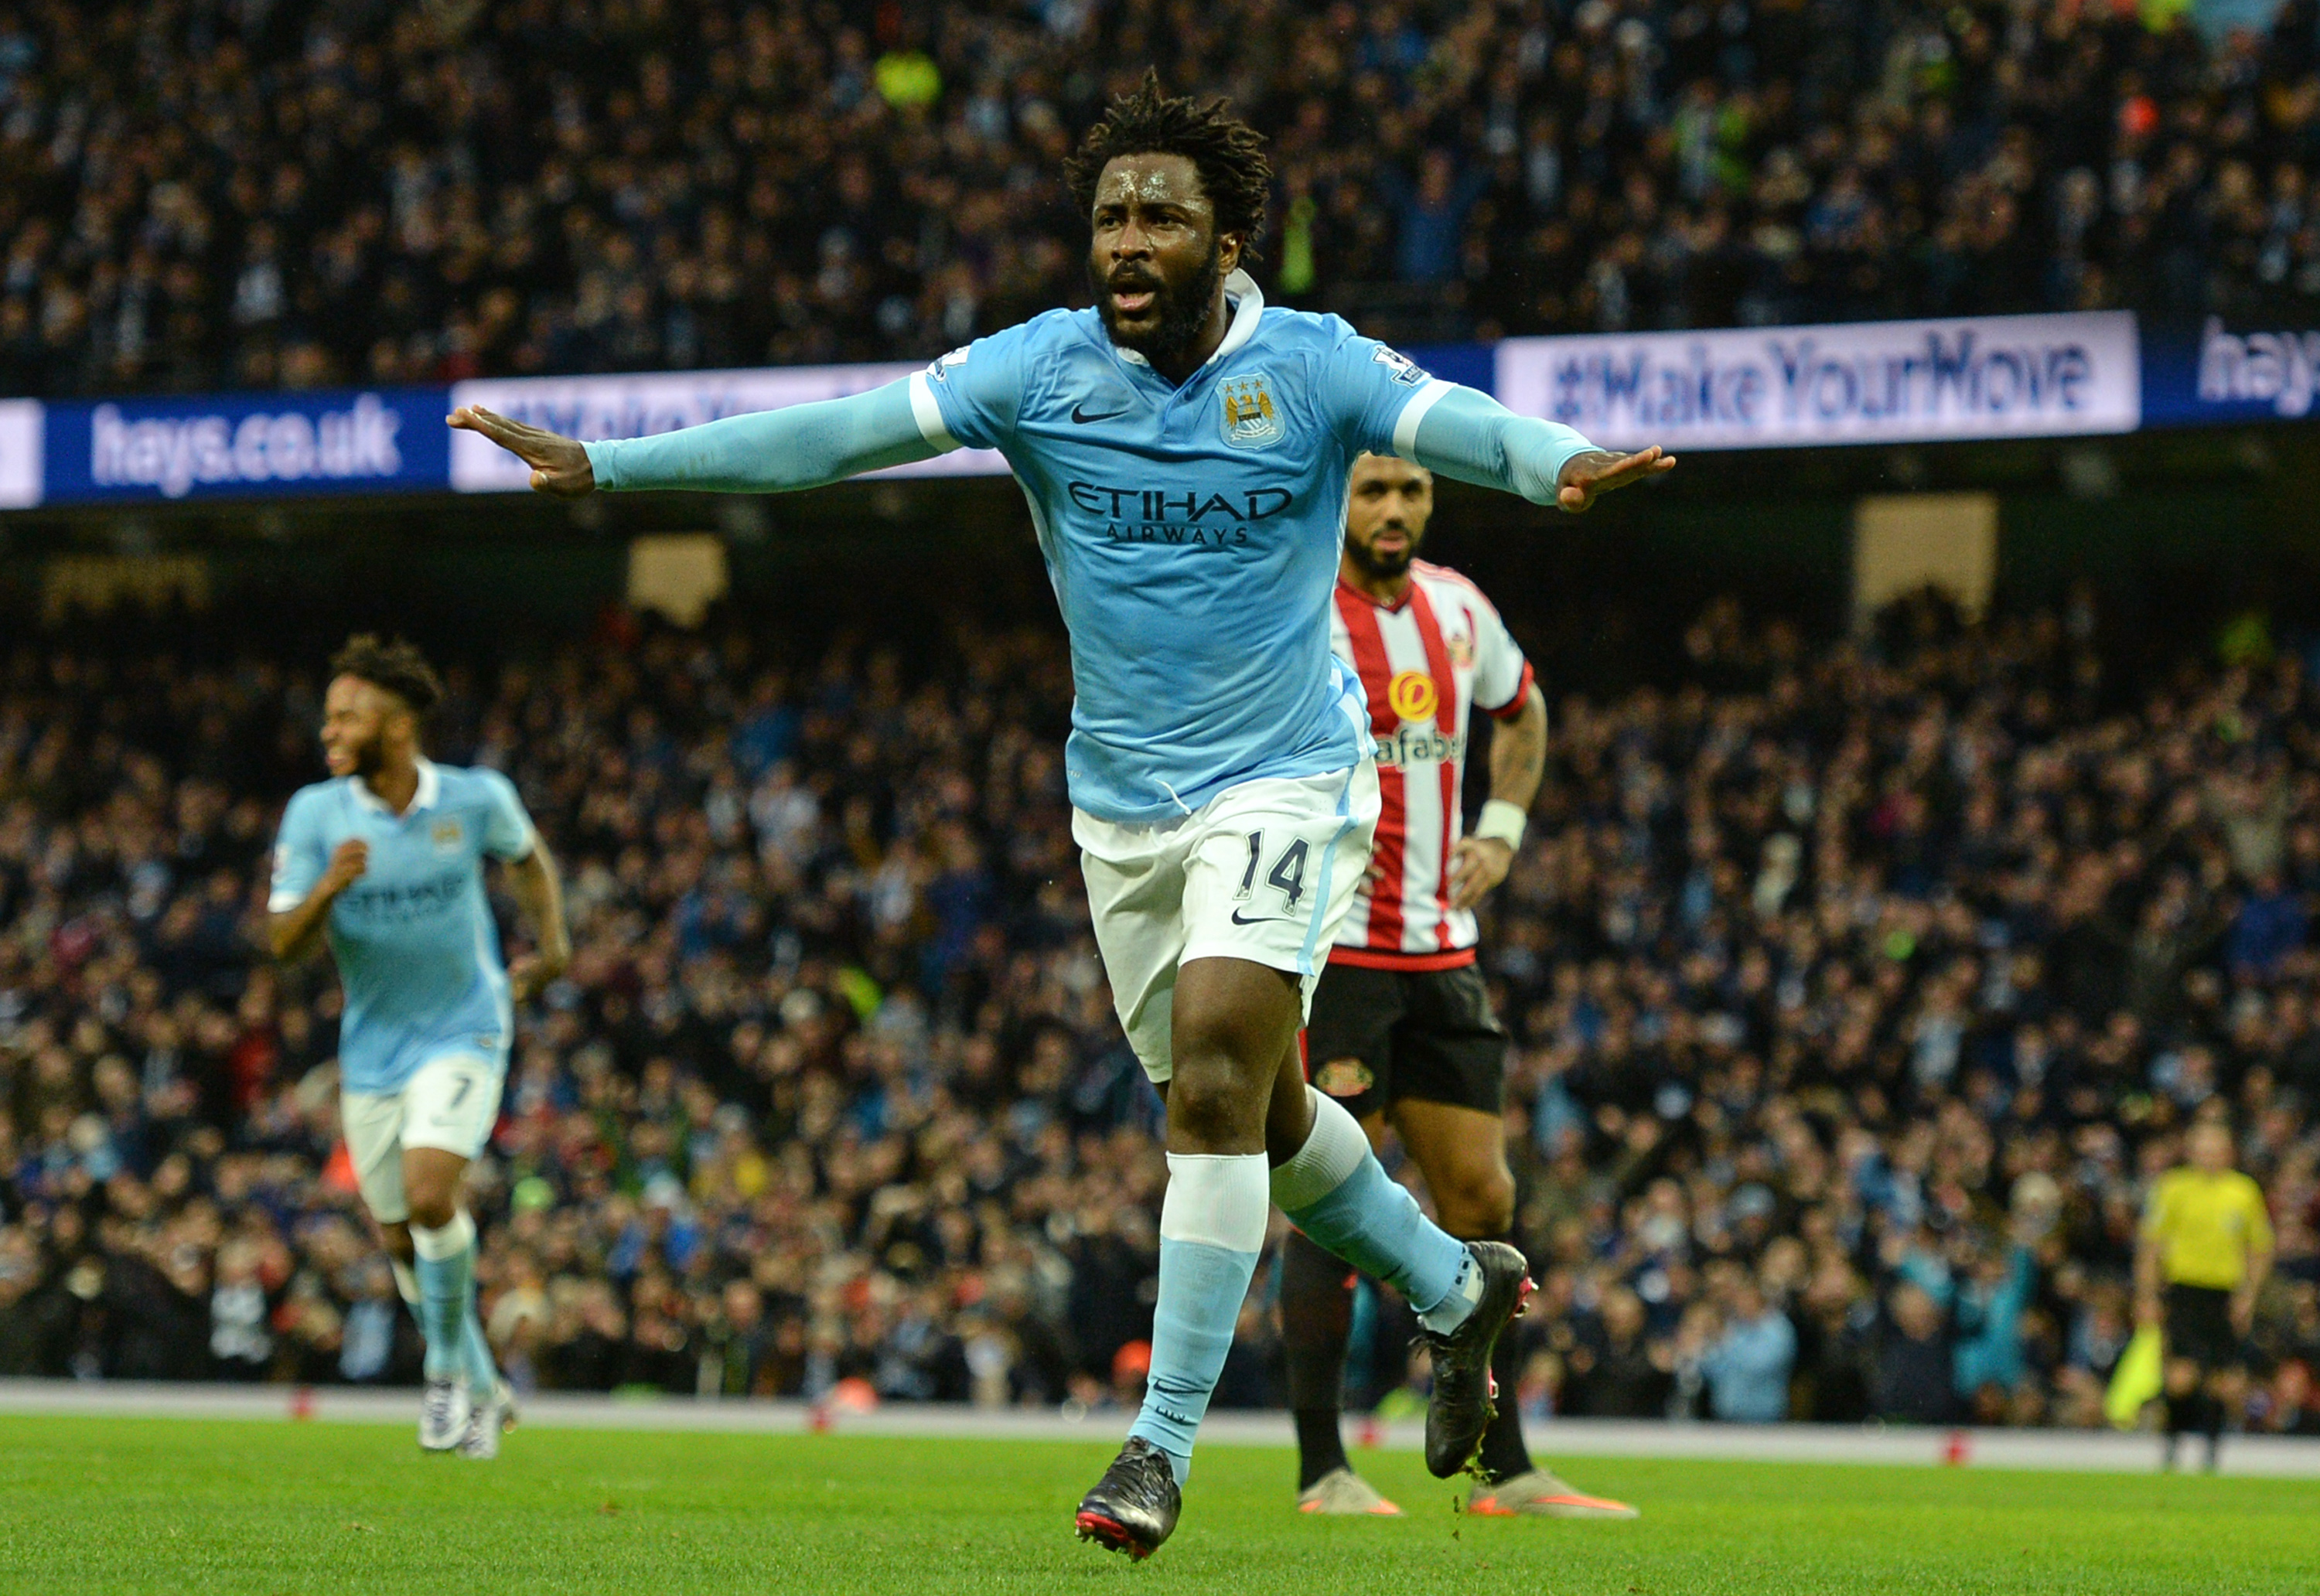 Manchester City's Ivorian striker Wilfried Bony celebrates scoring their third goal during the English Premier League football match between Manchester City and Sunderland at The Etihad stadium in Manchester, north west England on December 26, 2015. AFP PHOTO / OLI SCARFF RESTRICTED TO EDITORIAL USE. No use with unauthorized audio, video, data, fixture lists, club/league logos or 'live' services. Online in-match use limited to 75 images, no video emulation. No use in betting, games or single club/league/player publications. / AFP / OLI SCARFF (Photo credit should read OLI SCARFF/AFP/Getty Images)